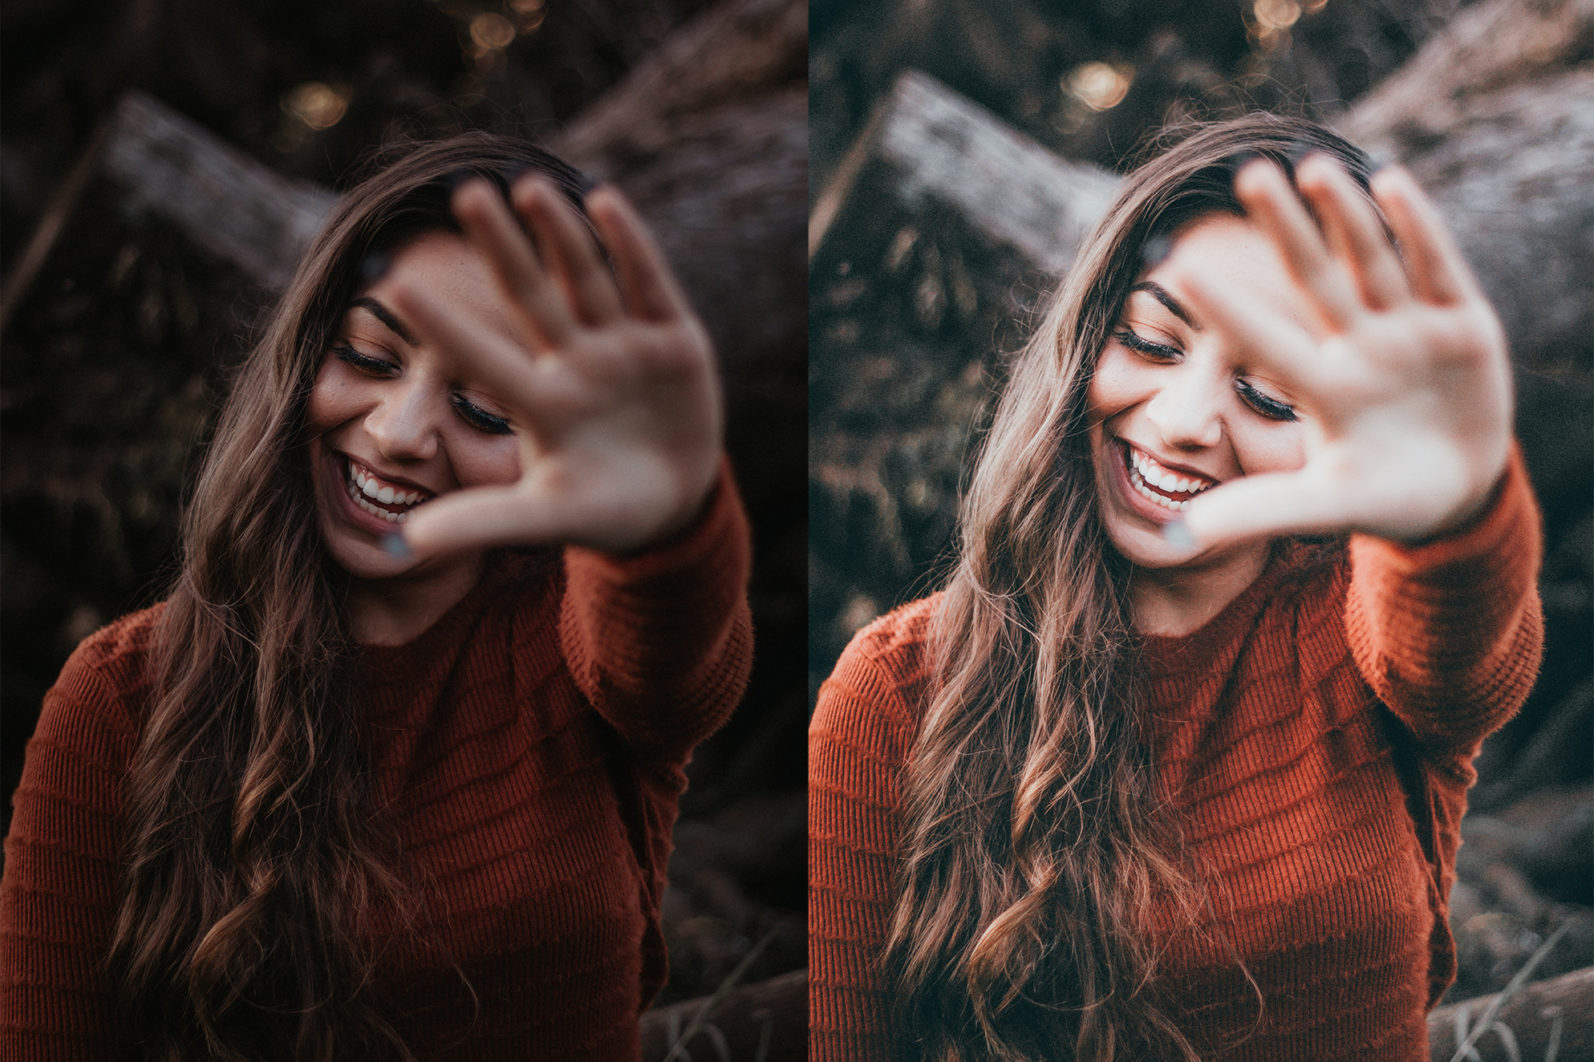 50 x TRAVEL BLOGGER PRESETS // Collect Memories // THE ONLY PRESETS YOU WILL EVER NEED - Preview 4 1 -